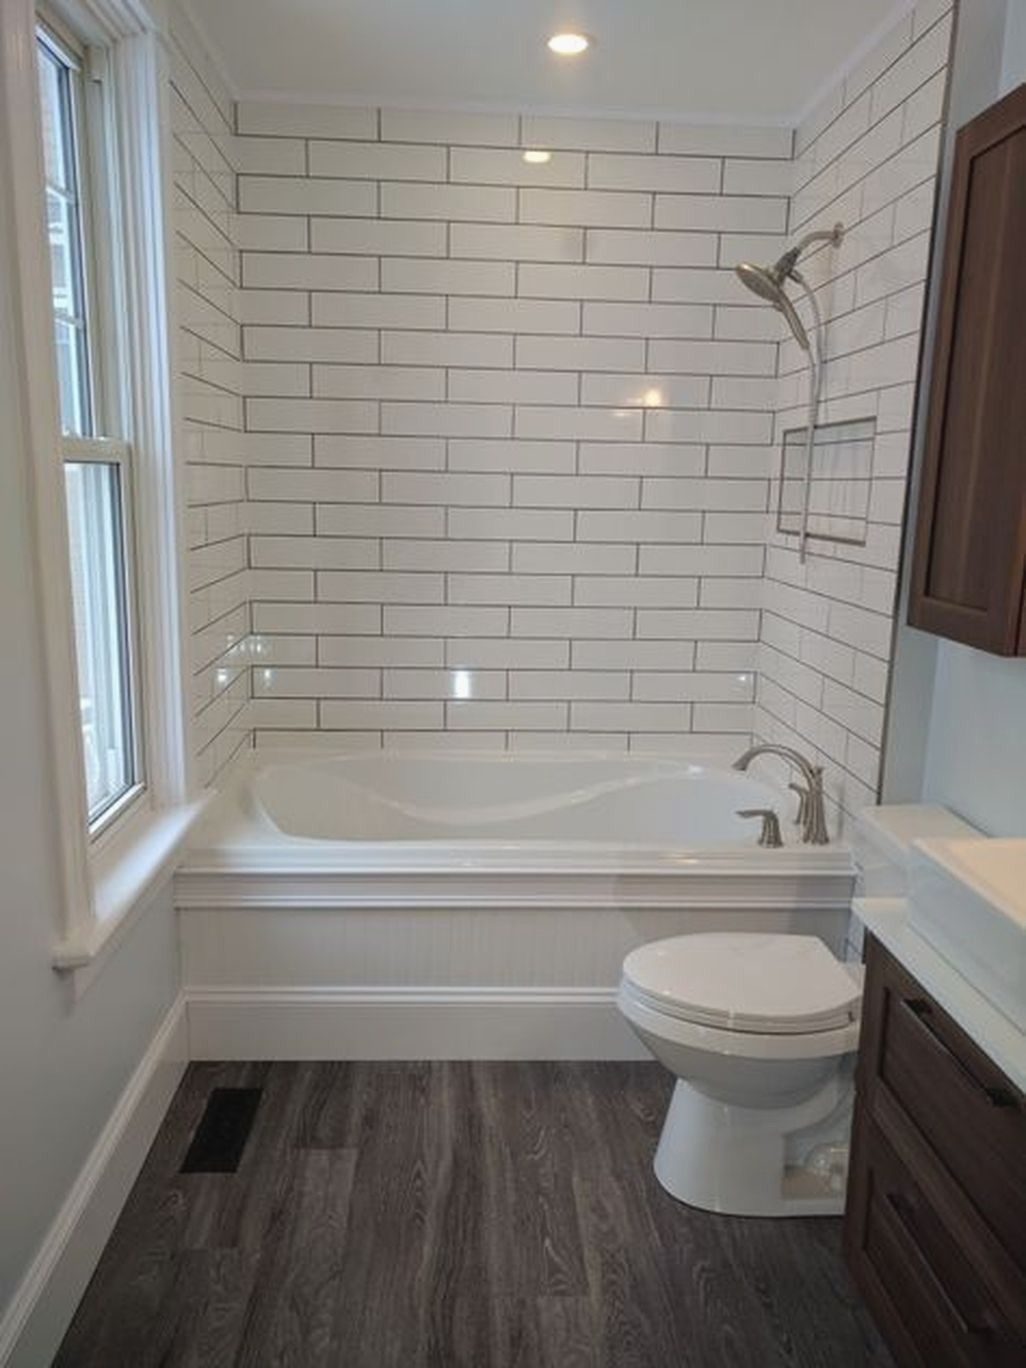 Take Advantage Of Your Bathroom Area By Working Up A Compact Yet Extremely Deliberate Vanit Minimalist Small Bathrooms Small Bathroom Remodel Bathrooms Remodel